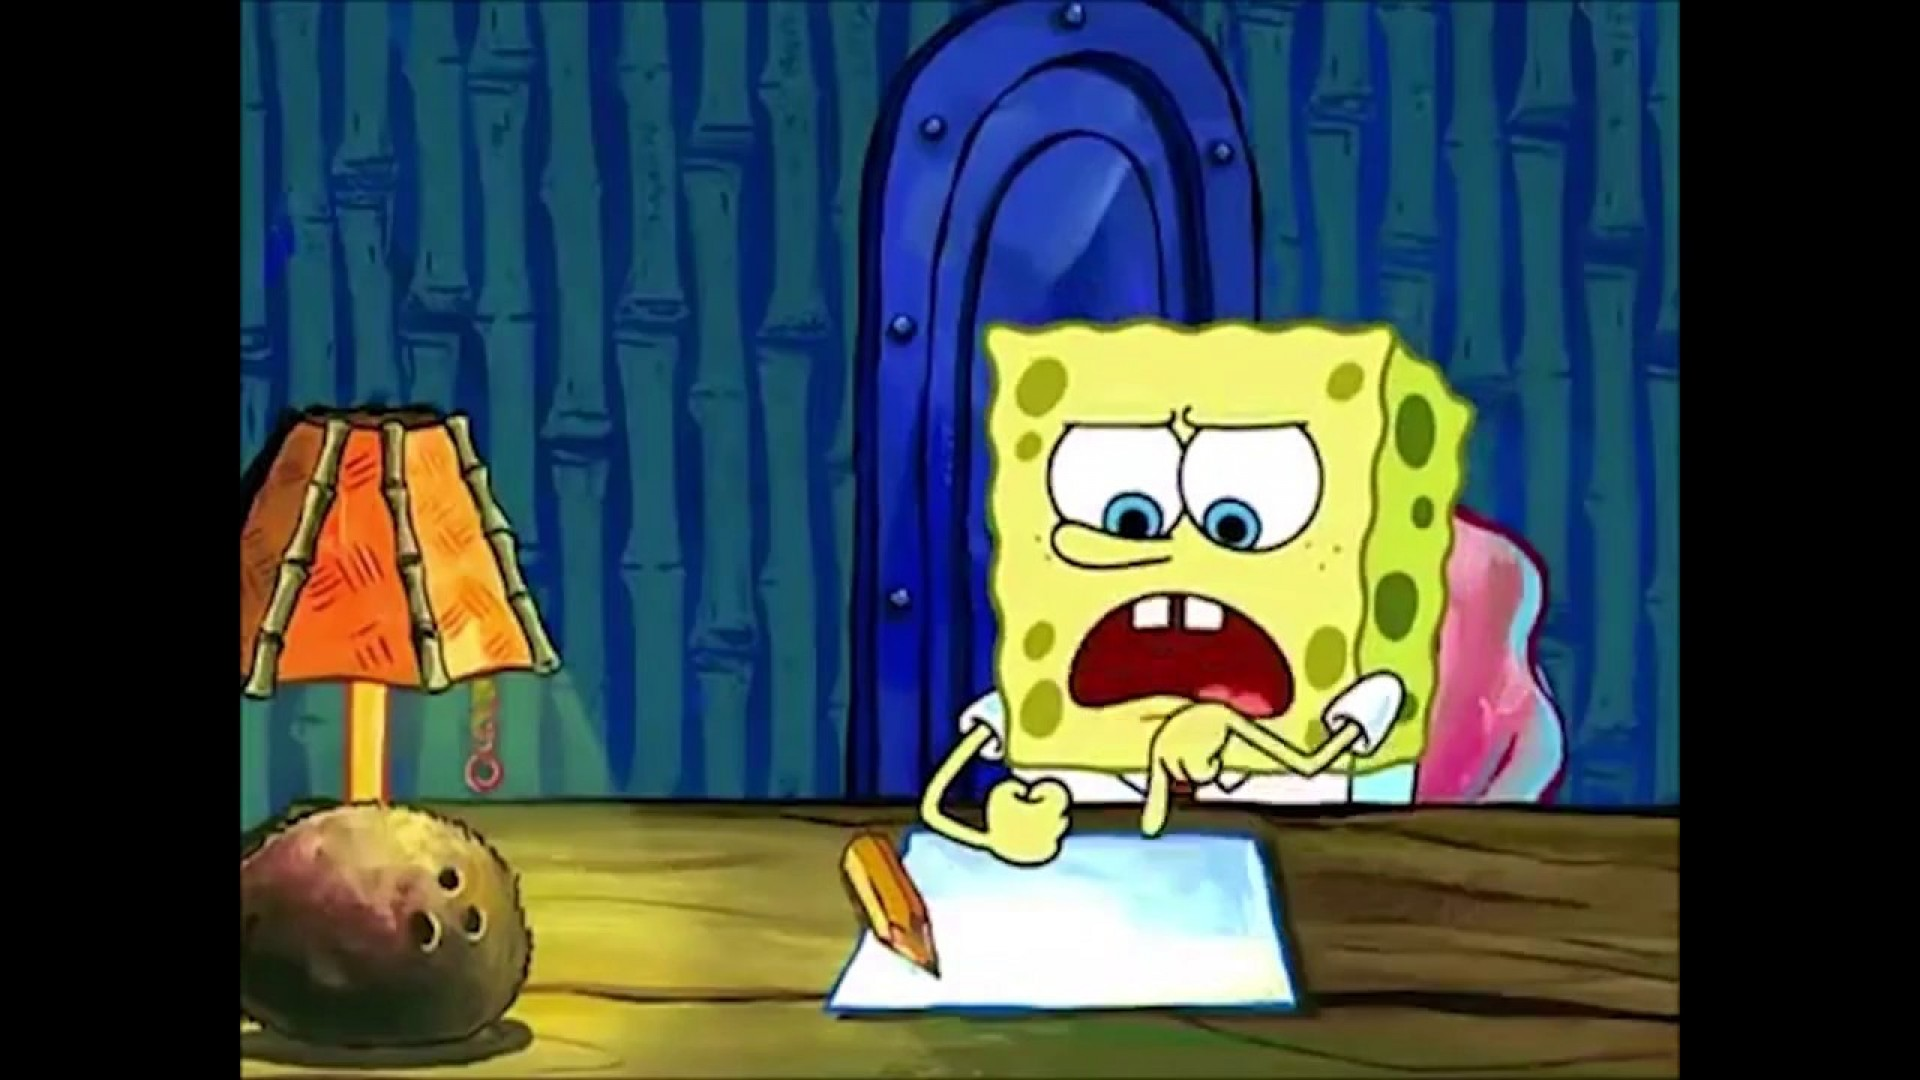 002 Essay Example Spongebob Spongebobs Youtube Maxresde Writing For Hours Rap The Font Meme Surprising Gif 1920